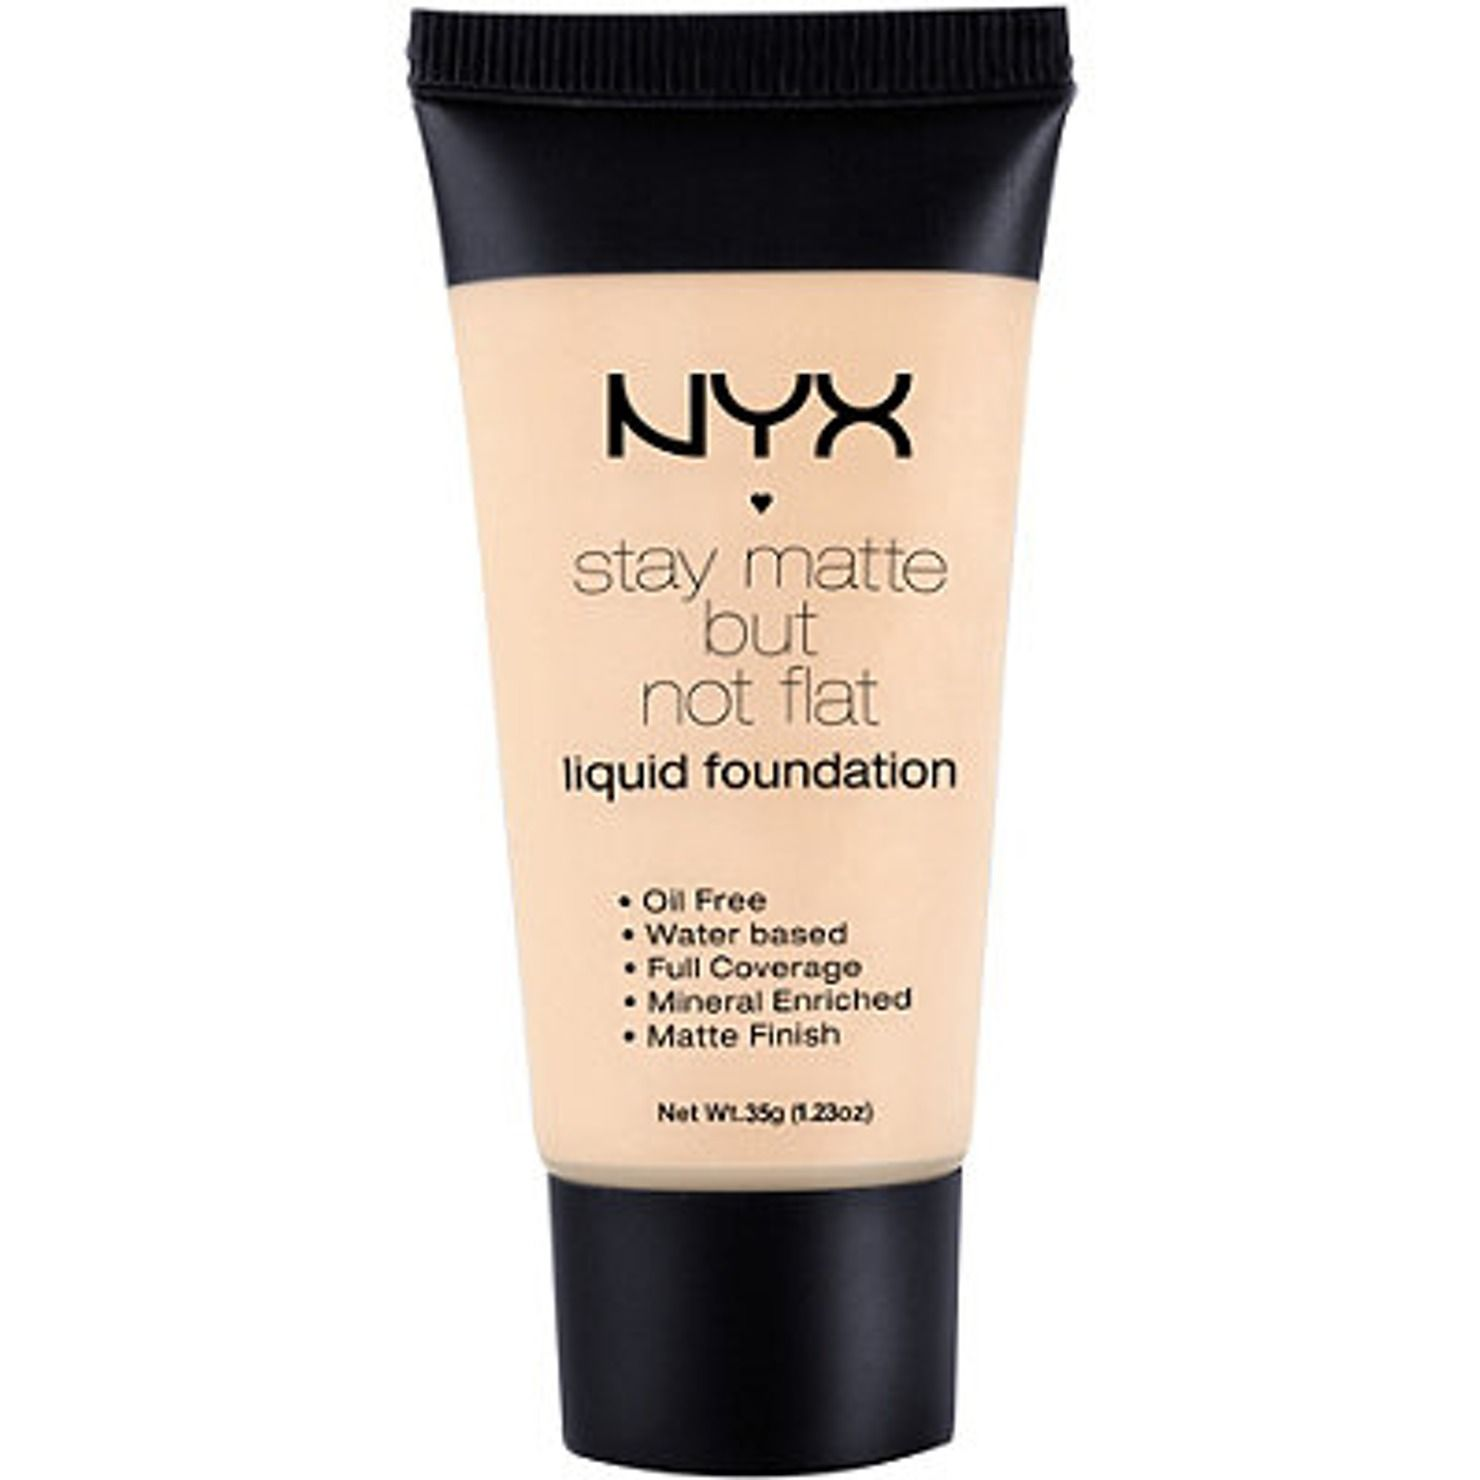 7 Sweat Proof Drugstore Foundations To Give You Flawless Coverage On A Budget Nyx Stay Matte No Foundation Makeup Liquid Foundation